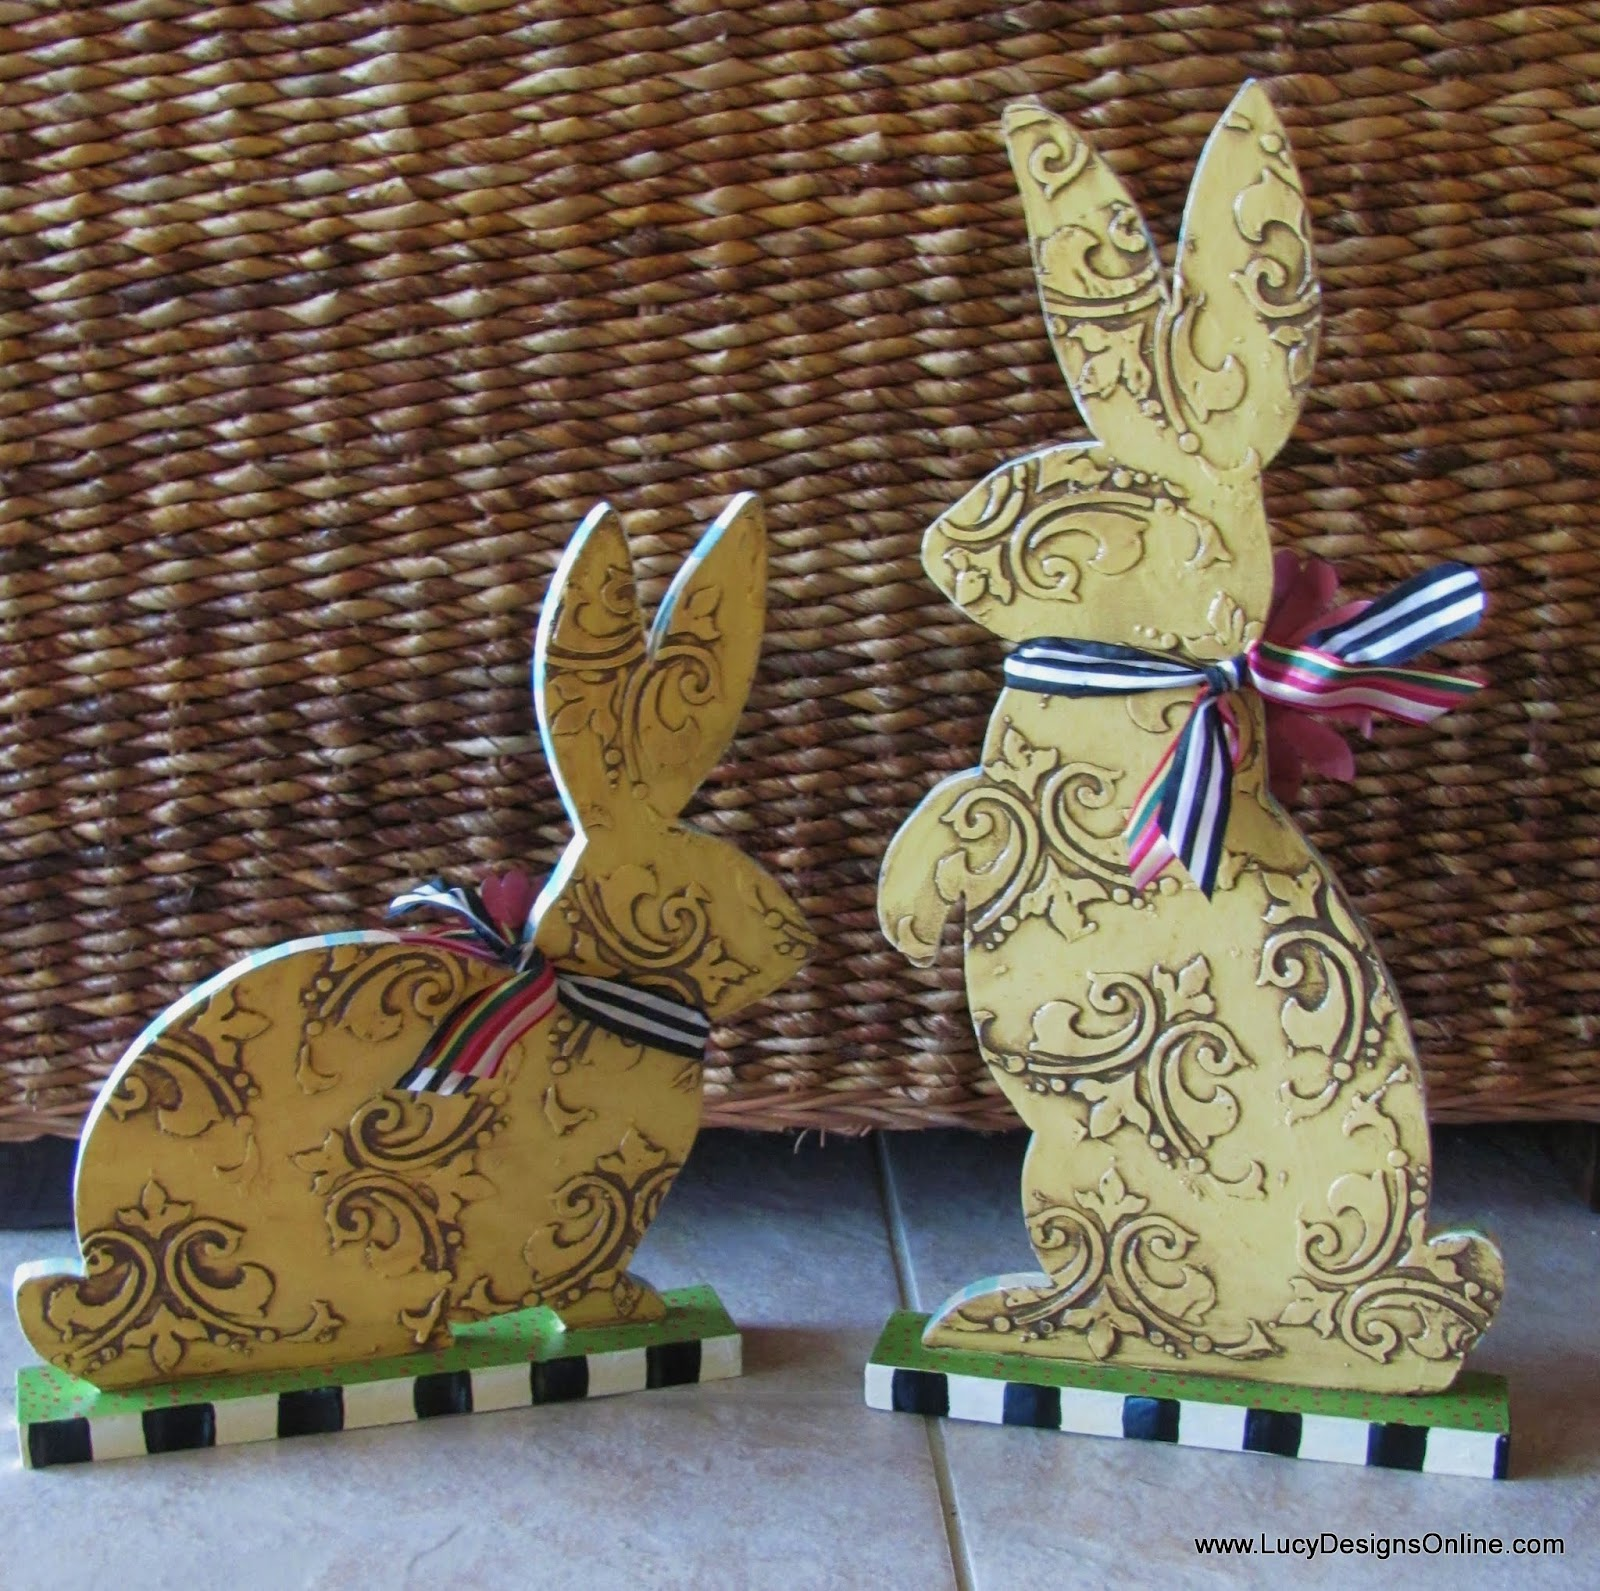 textured damask designs bunny easter decor